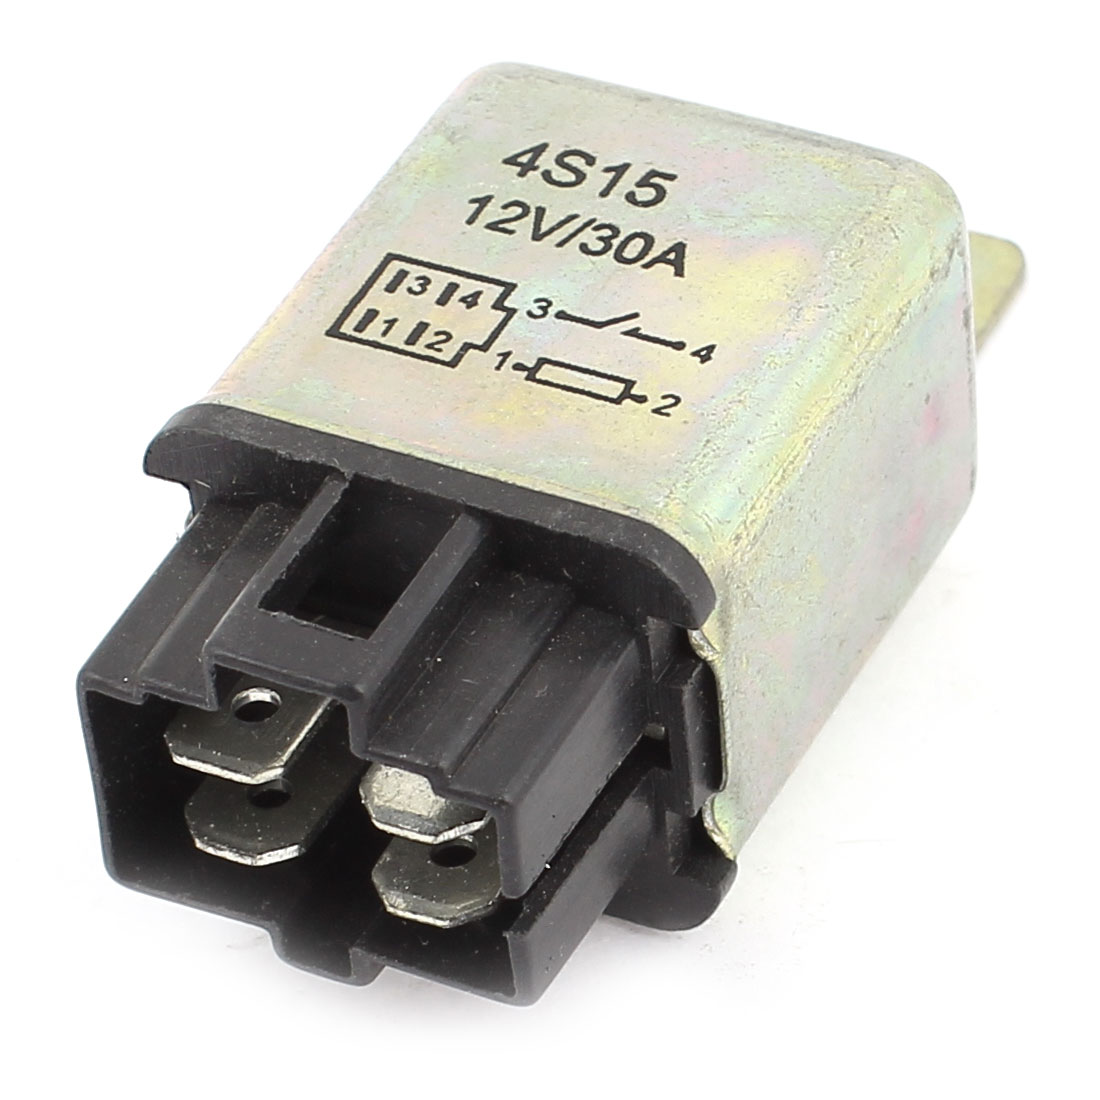 DC 12V 30A 1NO SPST 6mm Mounting Hole 4Pins Socket Automotive Truck Car Relay